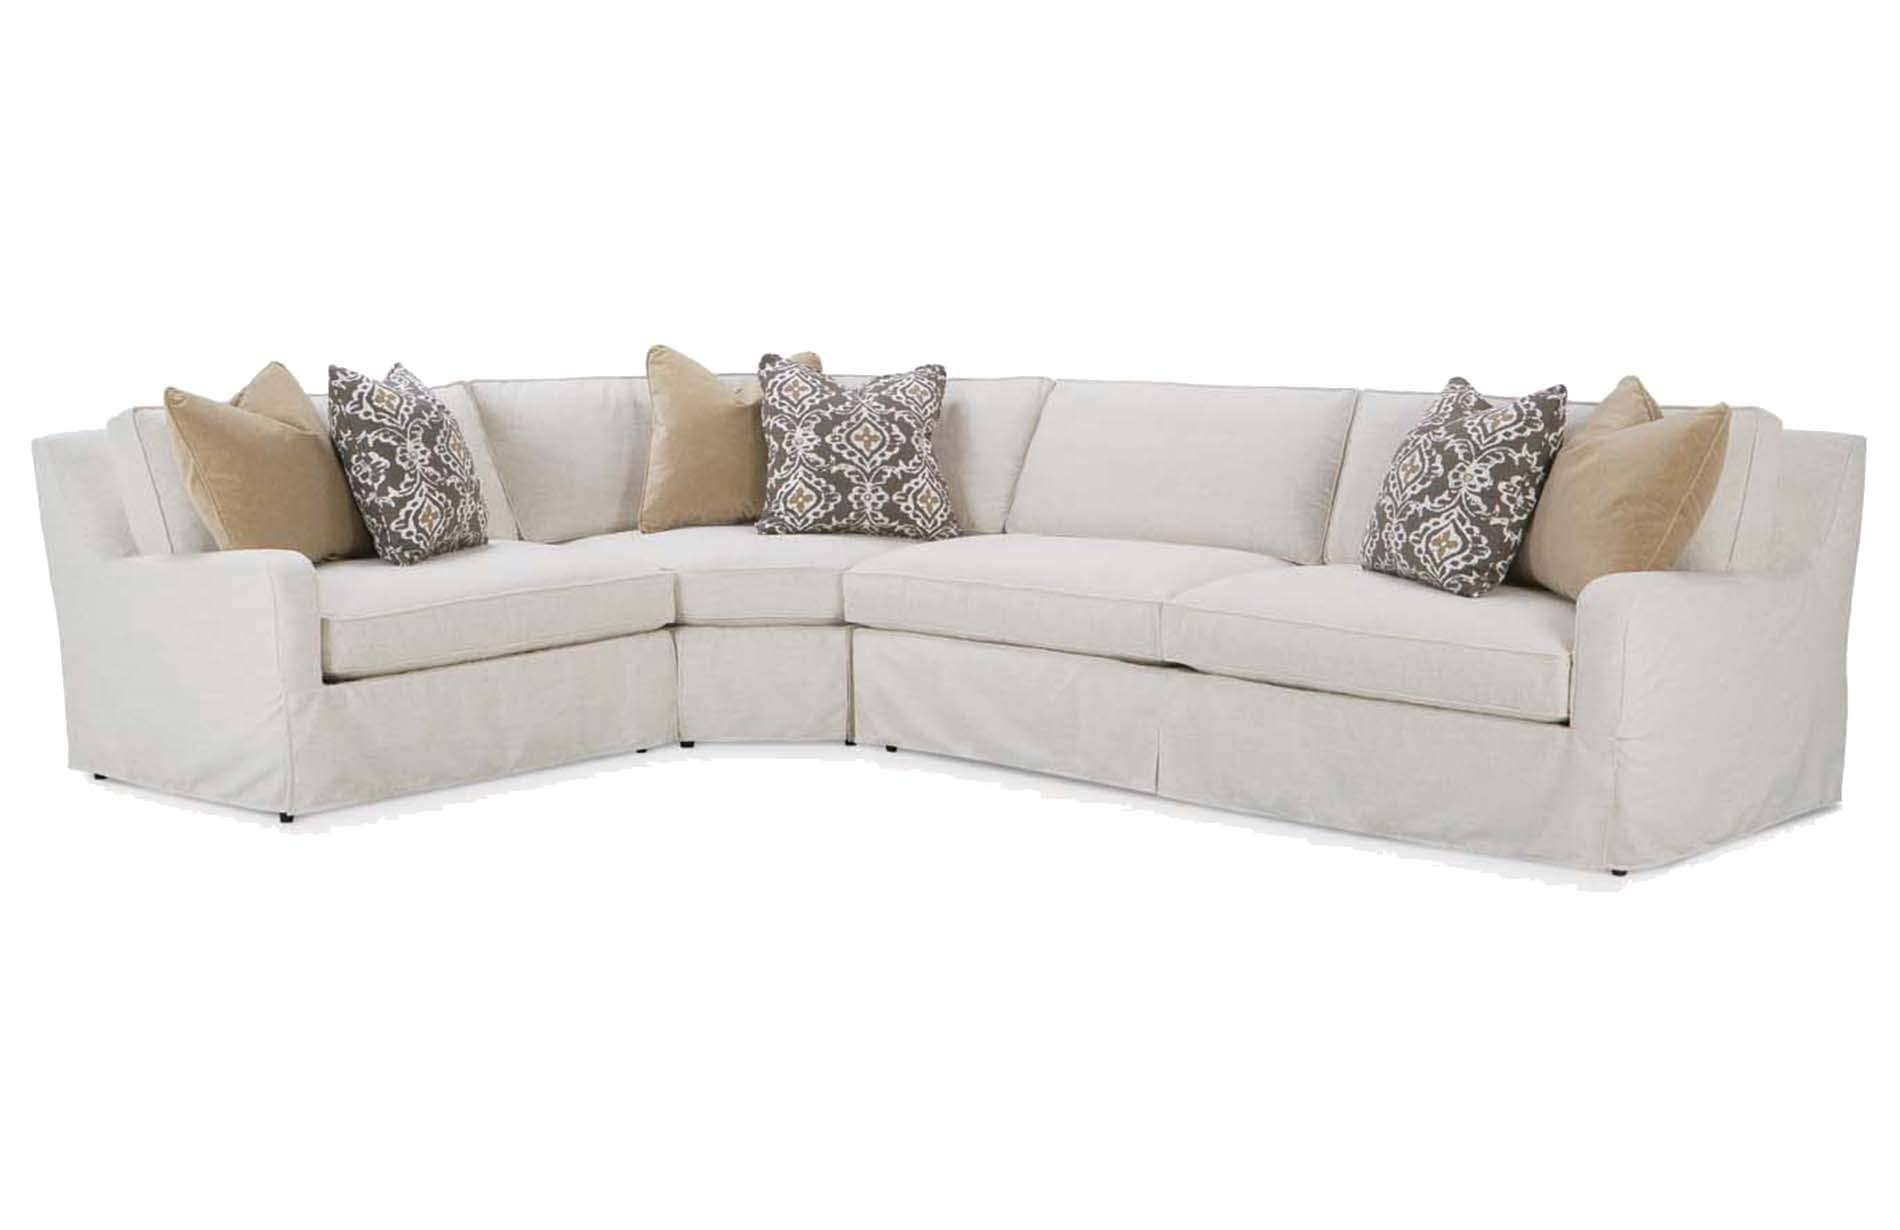 Furniture: Slipcover Sectional Sofa | Couch Covers Cheap | Couch intended for 3 Piece Sofa Covers (Image 8 of 15)